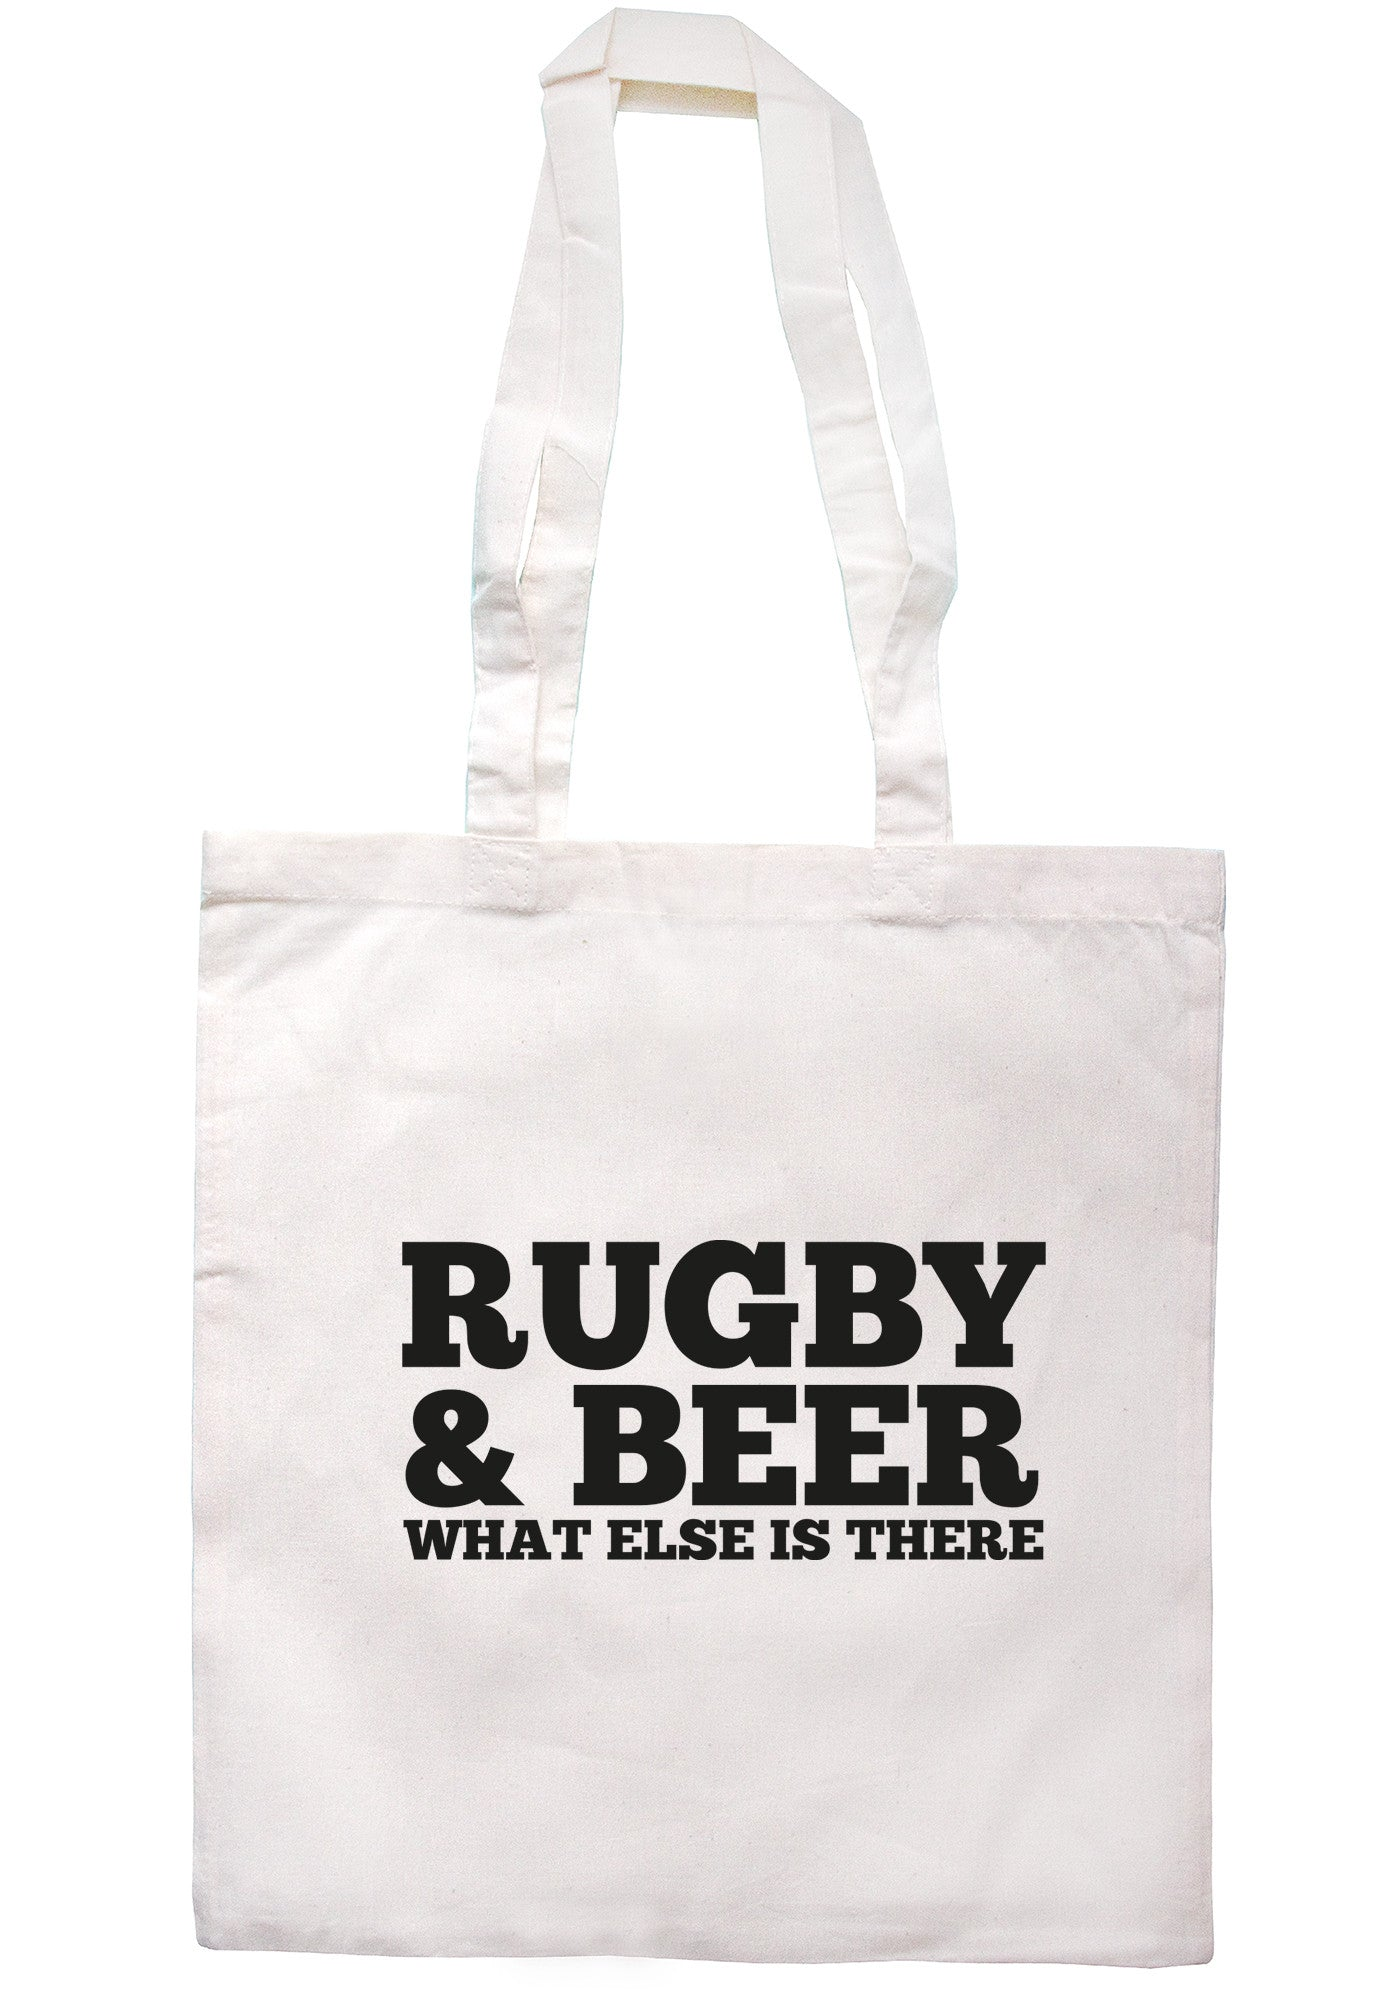 Rugby & Beer What Else Is There Tote Bag TB0467 - Illustrated Identity Ltd.